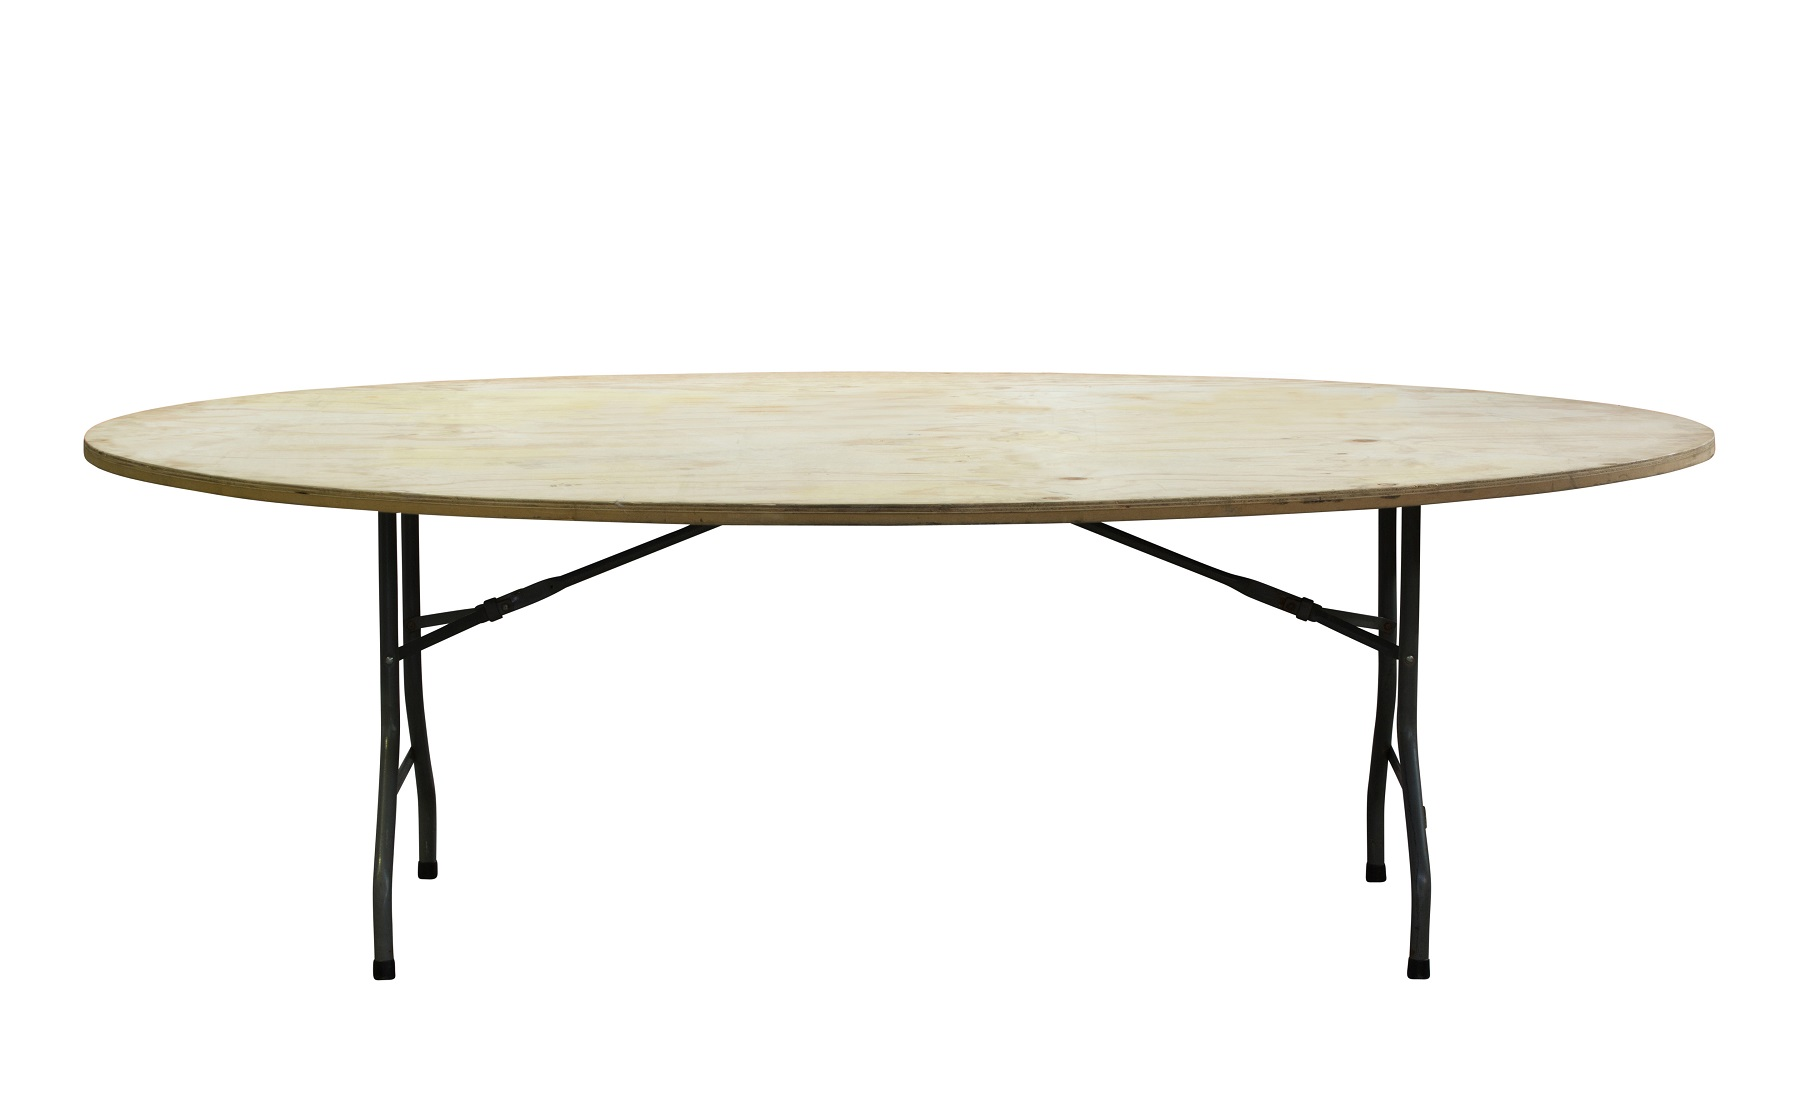 Oval Table Tops - Egg Shaped sits on 2.1m trestle with flat bar locking